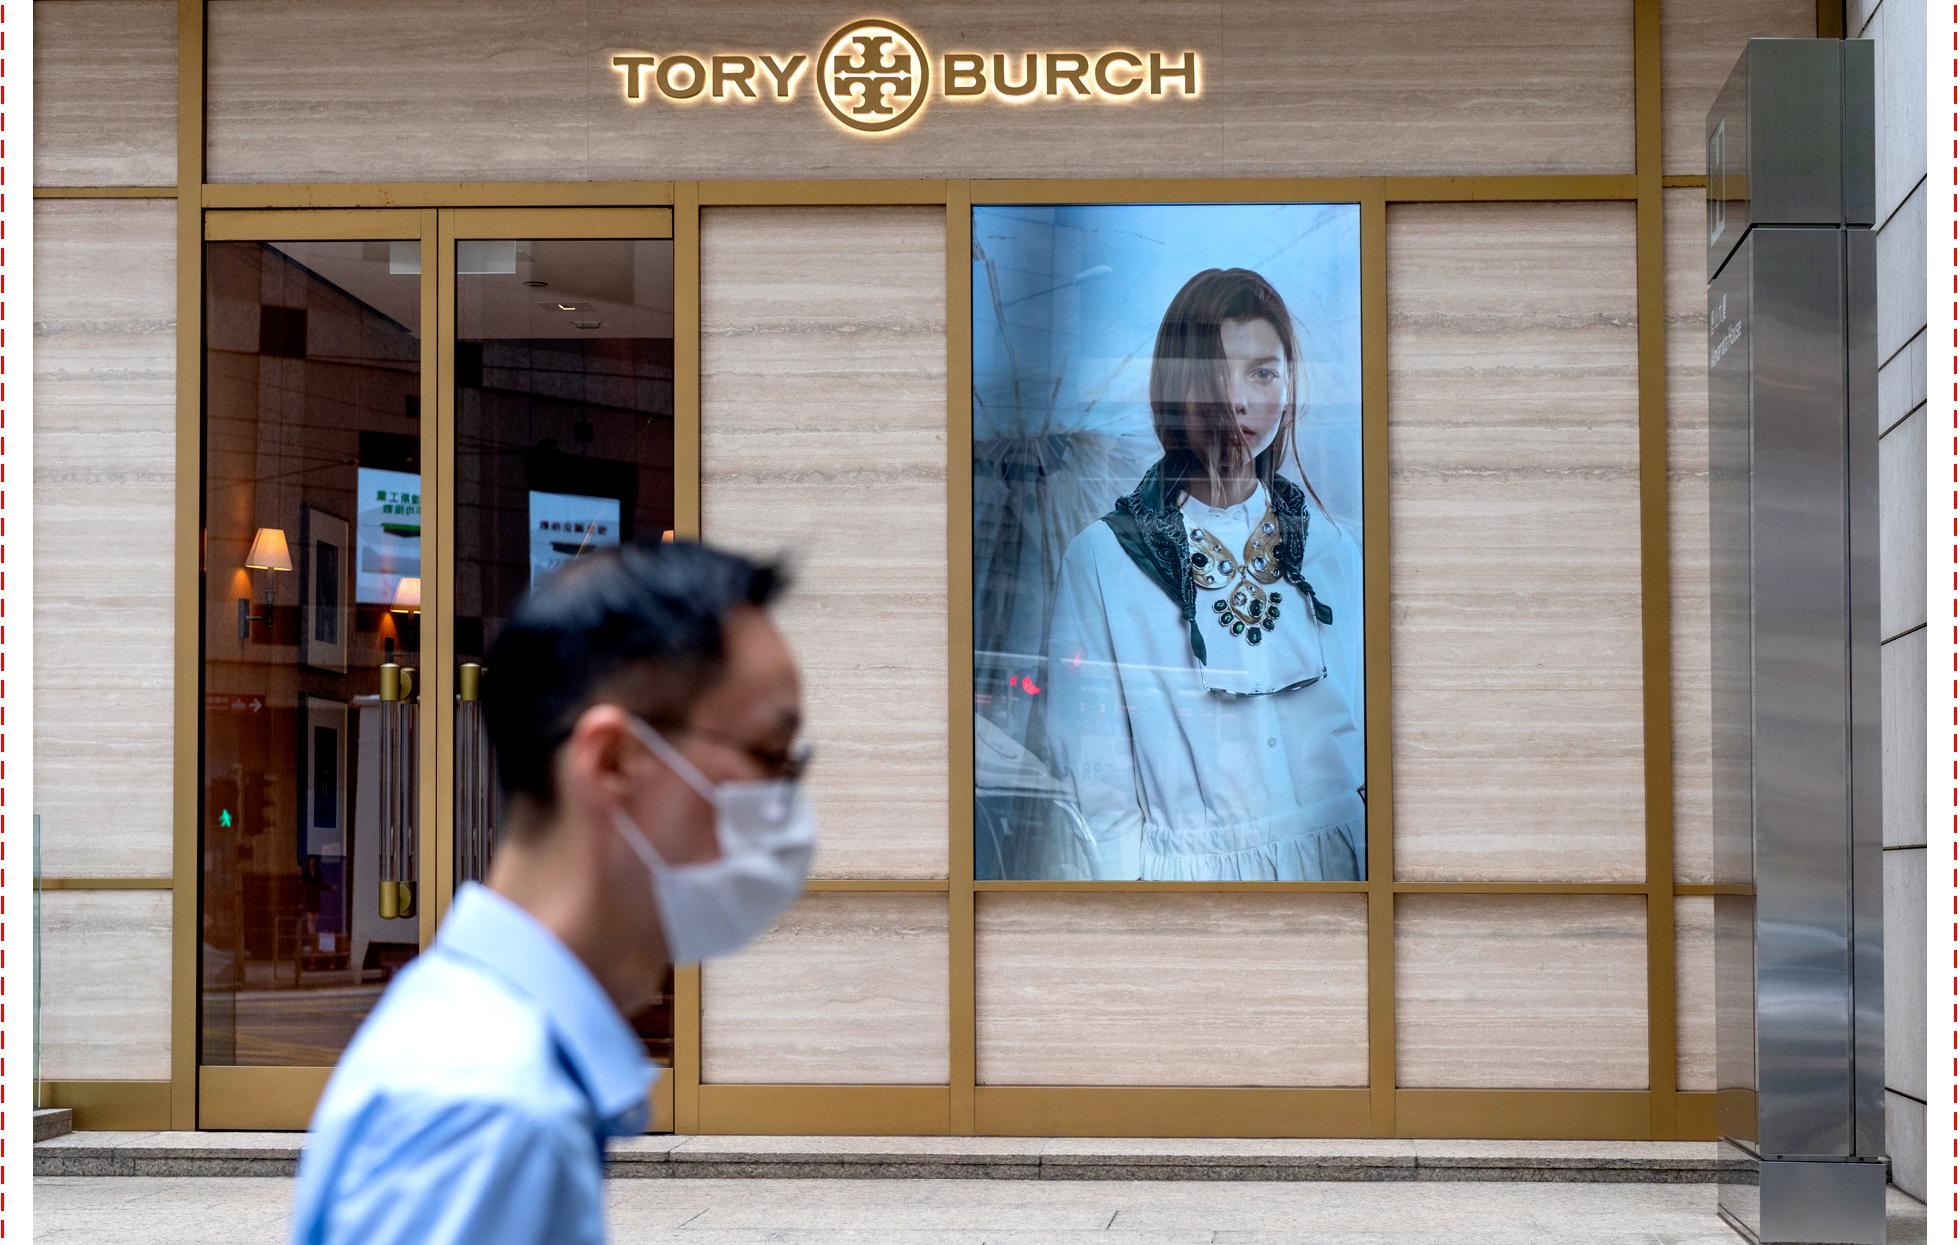 In late January, Burch began temporarily shutting down most of the brand's 315 stores in 35 countries, including those in Hong Kong. By June, most had re-opened.